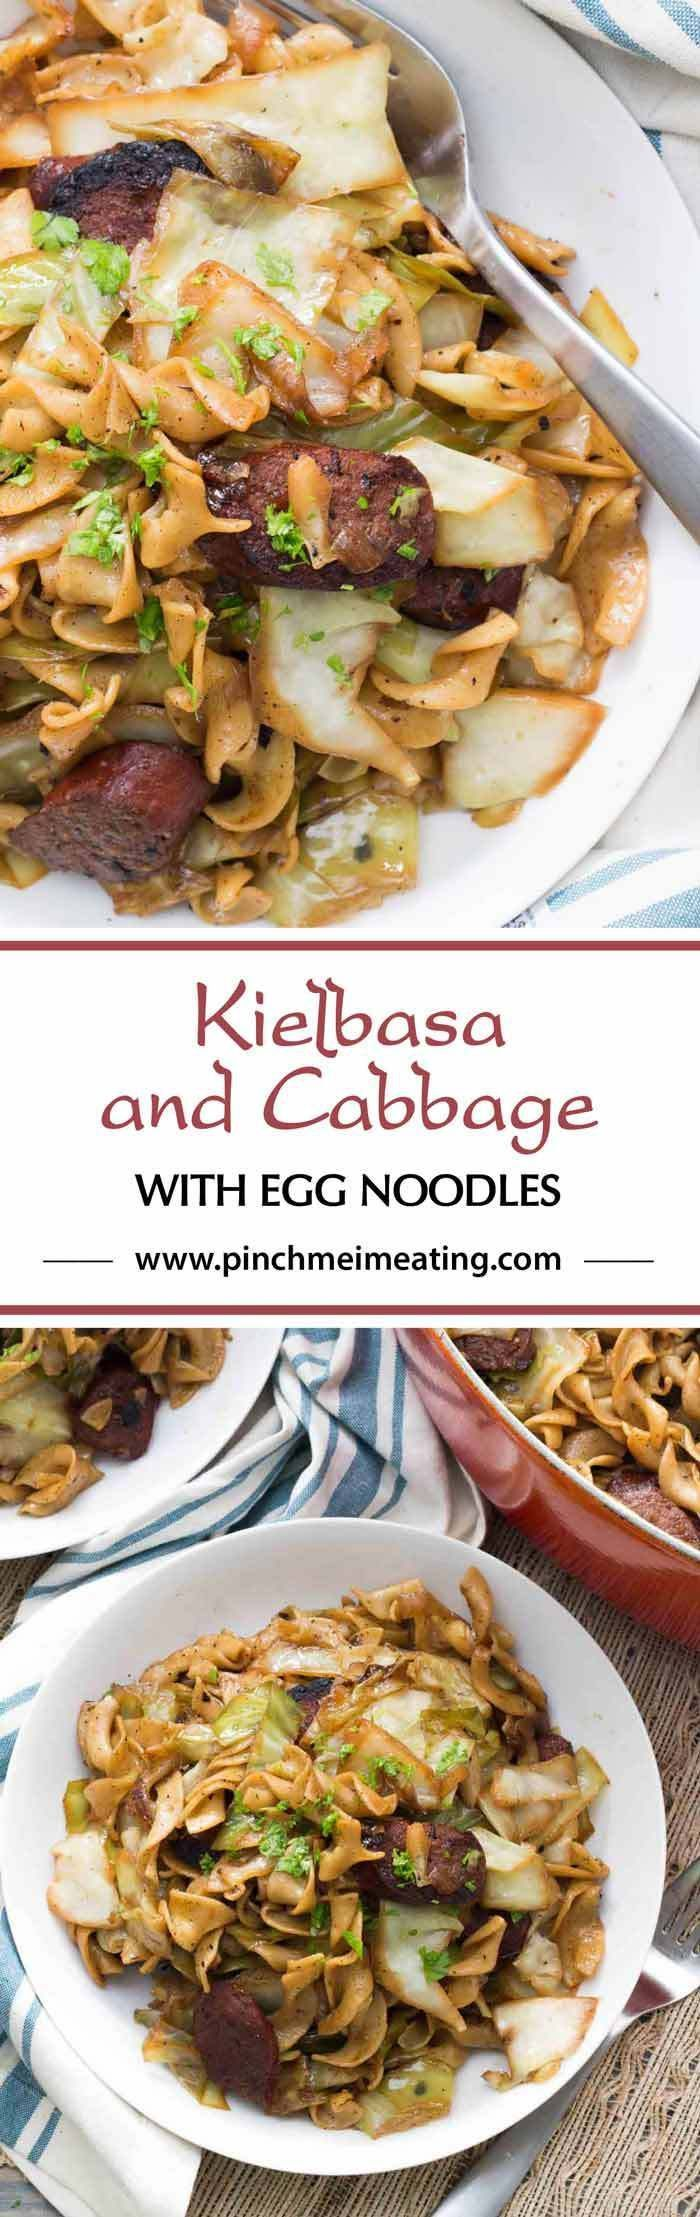 78 best ukrainian recipes images on pinterest ukrainian recipes kielbasa and cabbage with egg noodles comfort food recipesentree forumfinder Images